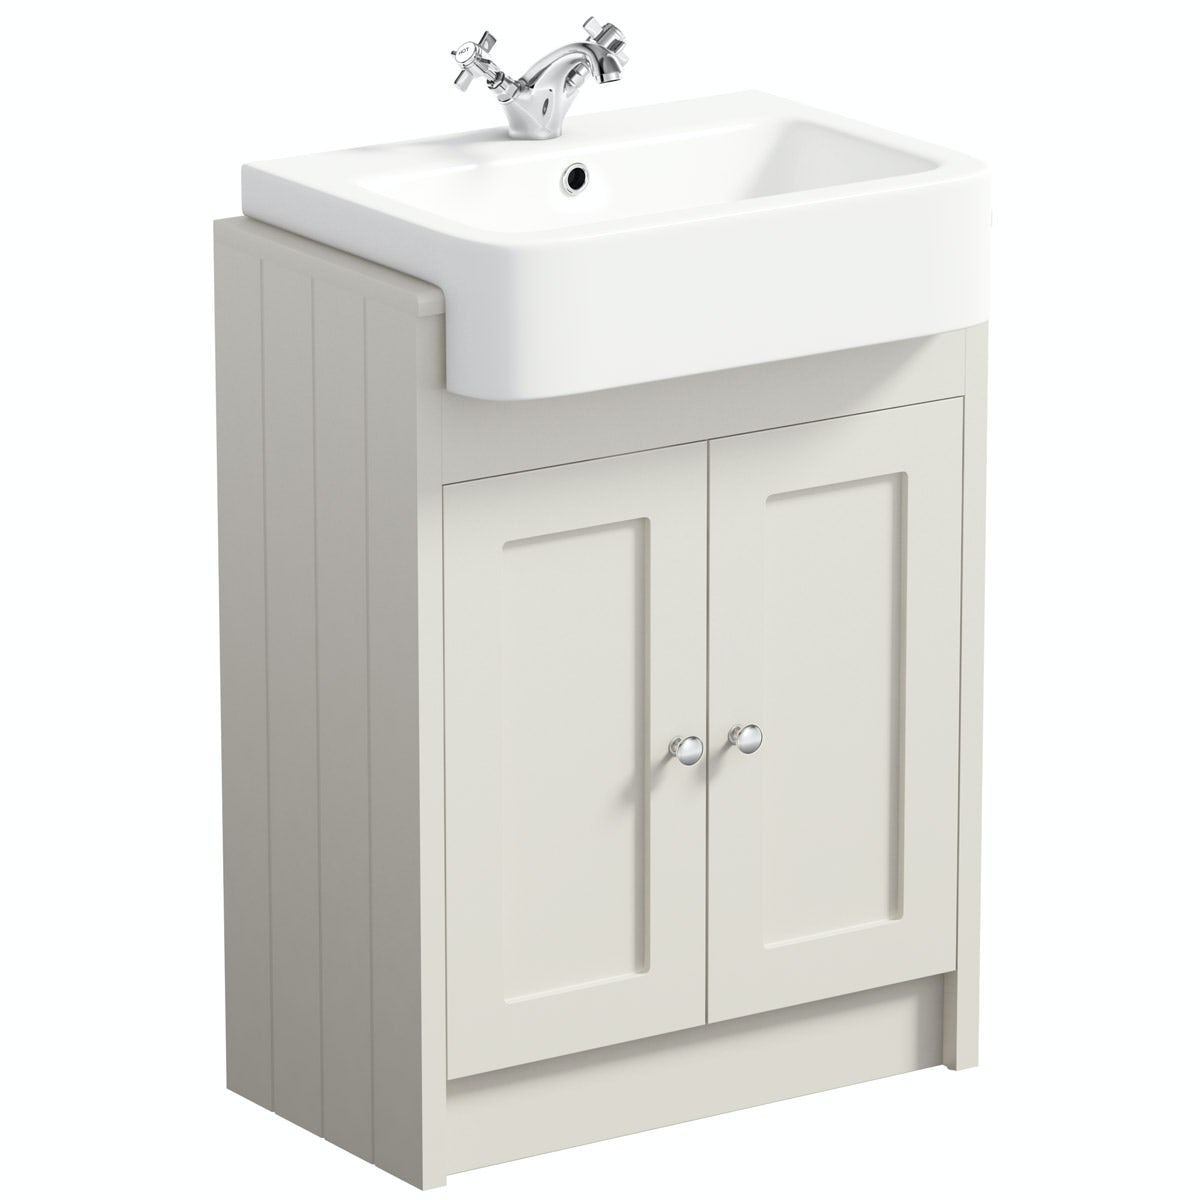 The Bath Co Dulwich Stone Ivory Semi Recessed Vanity With